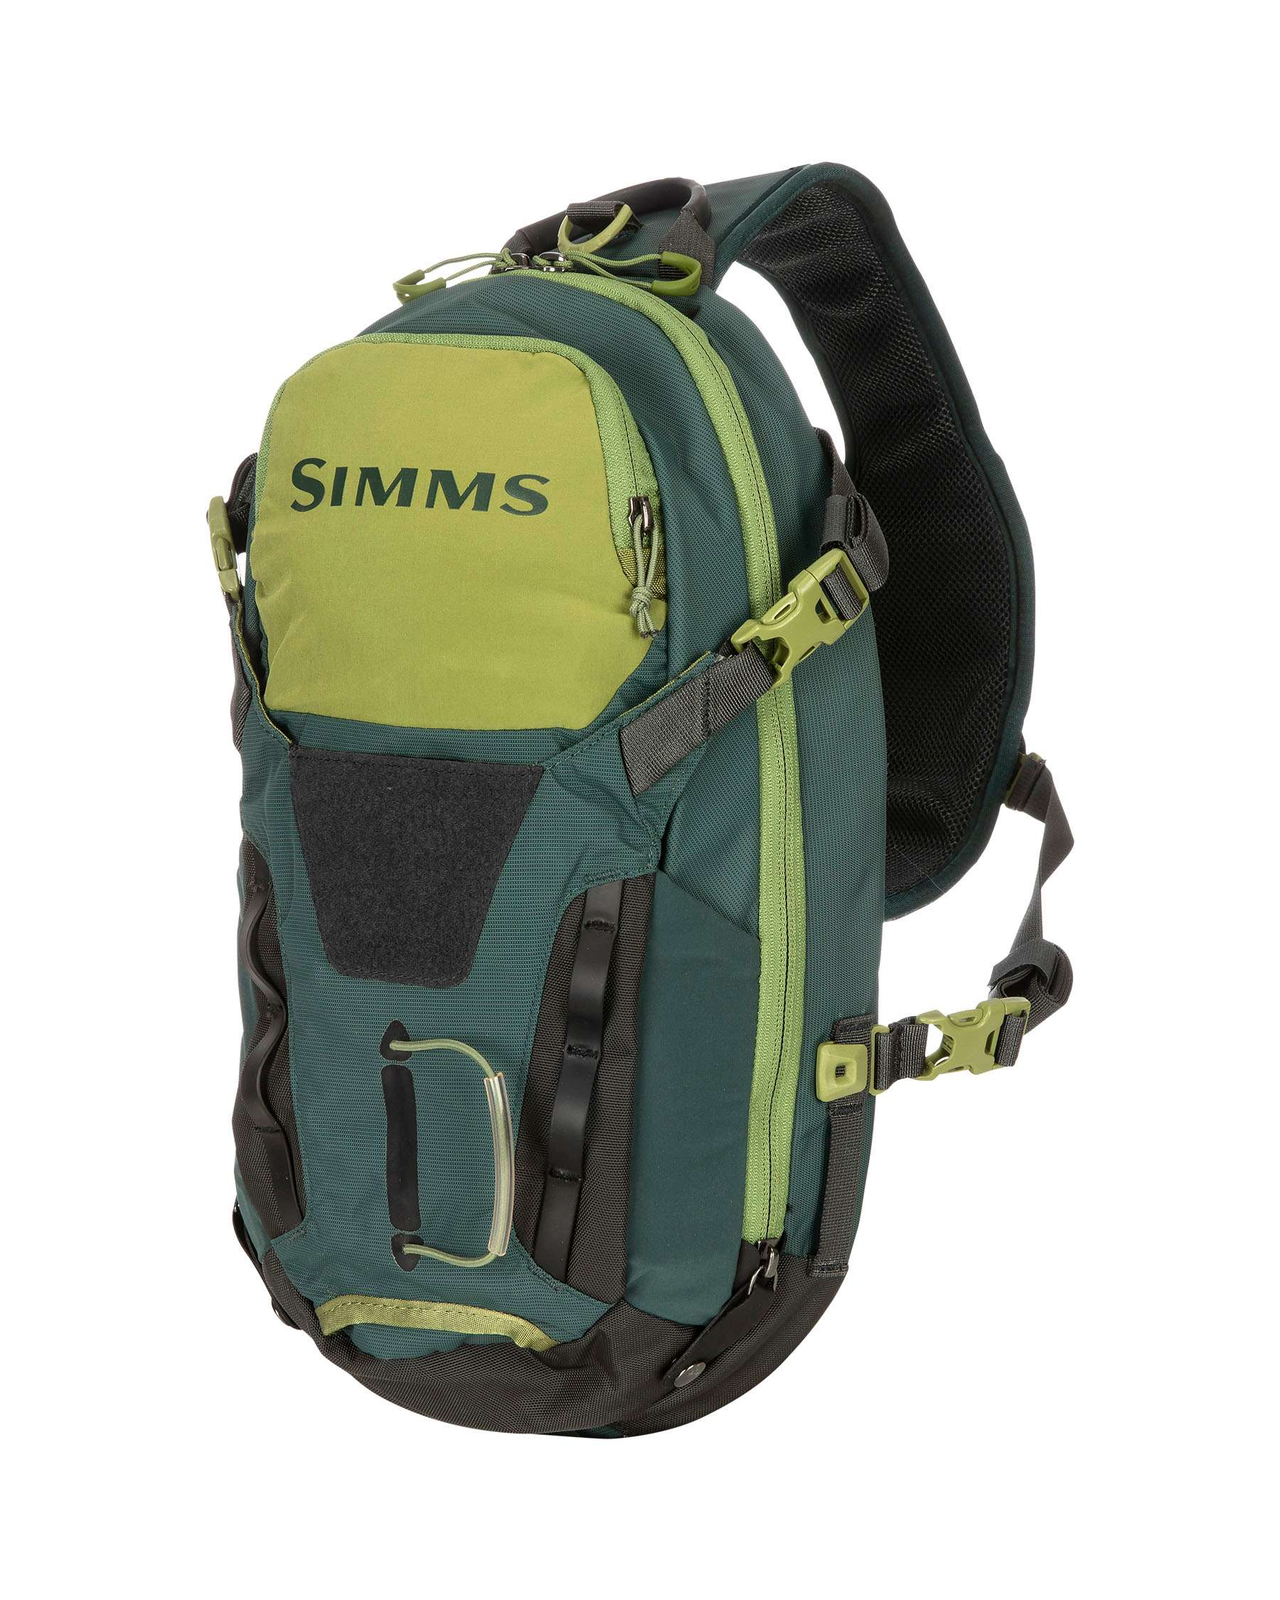 Simms Batoh Freestone Ambi Tactical Sling Pack Shadow, Green